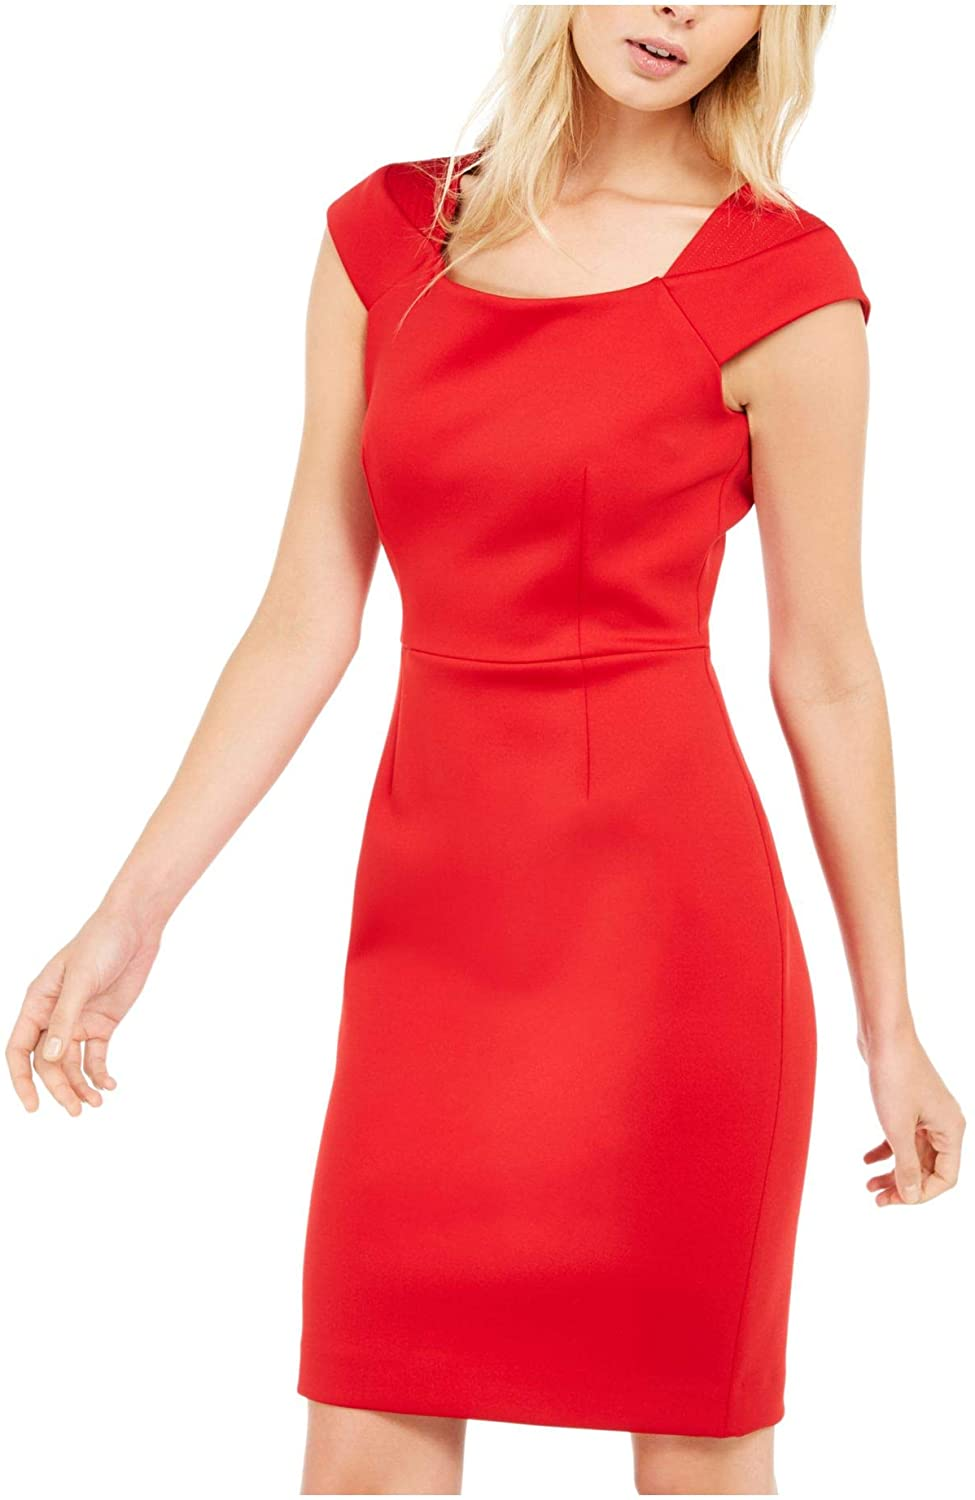 Calvin Klein Womens Red Cap Sleeve Square Neck Above The Knee Sheath Cocktail Dress Size 12